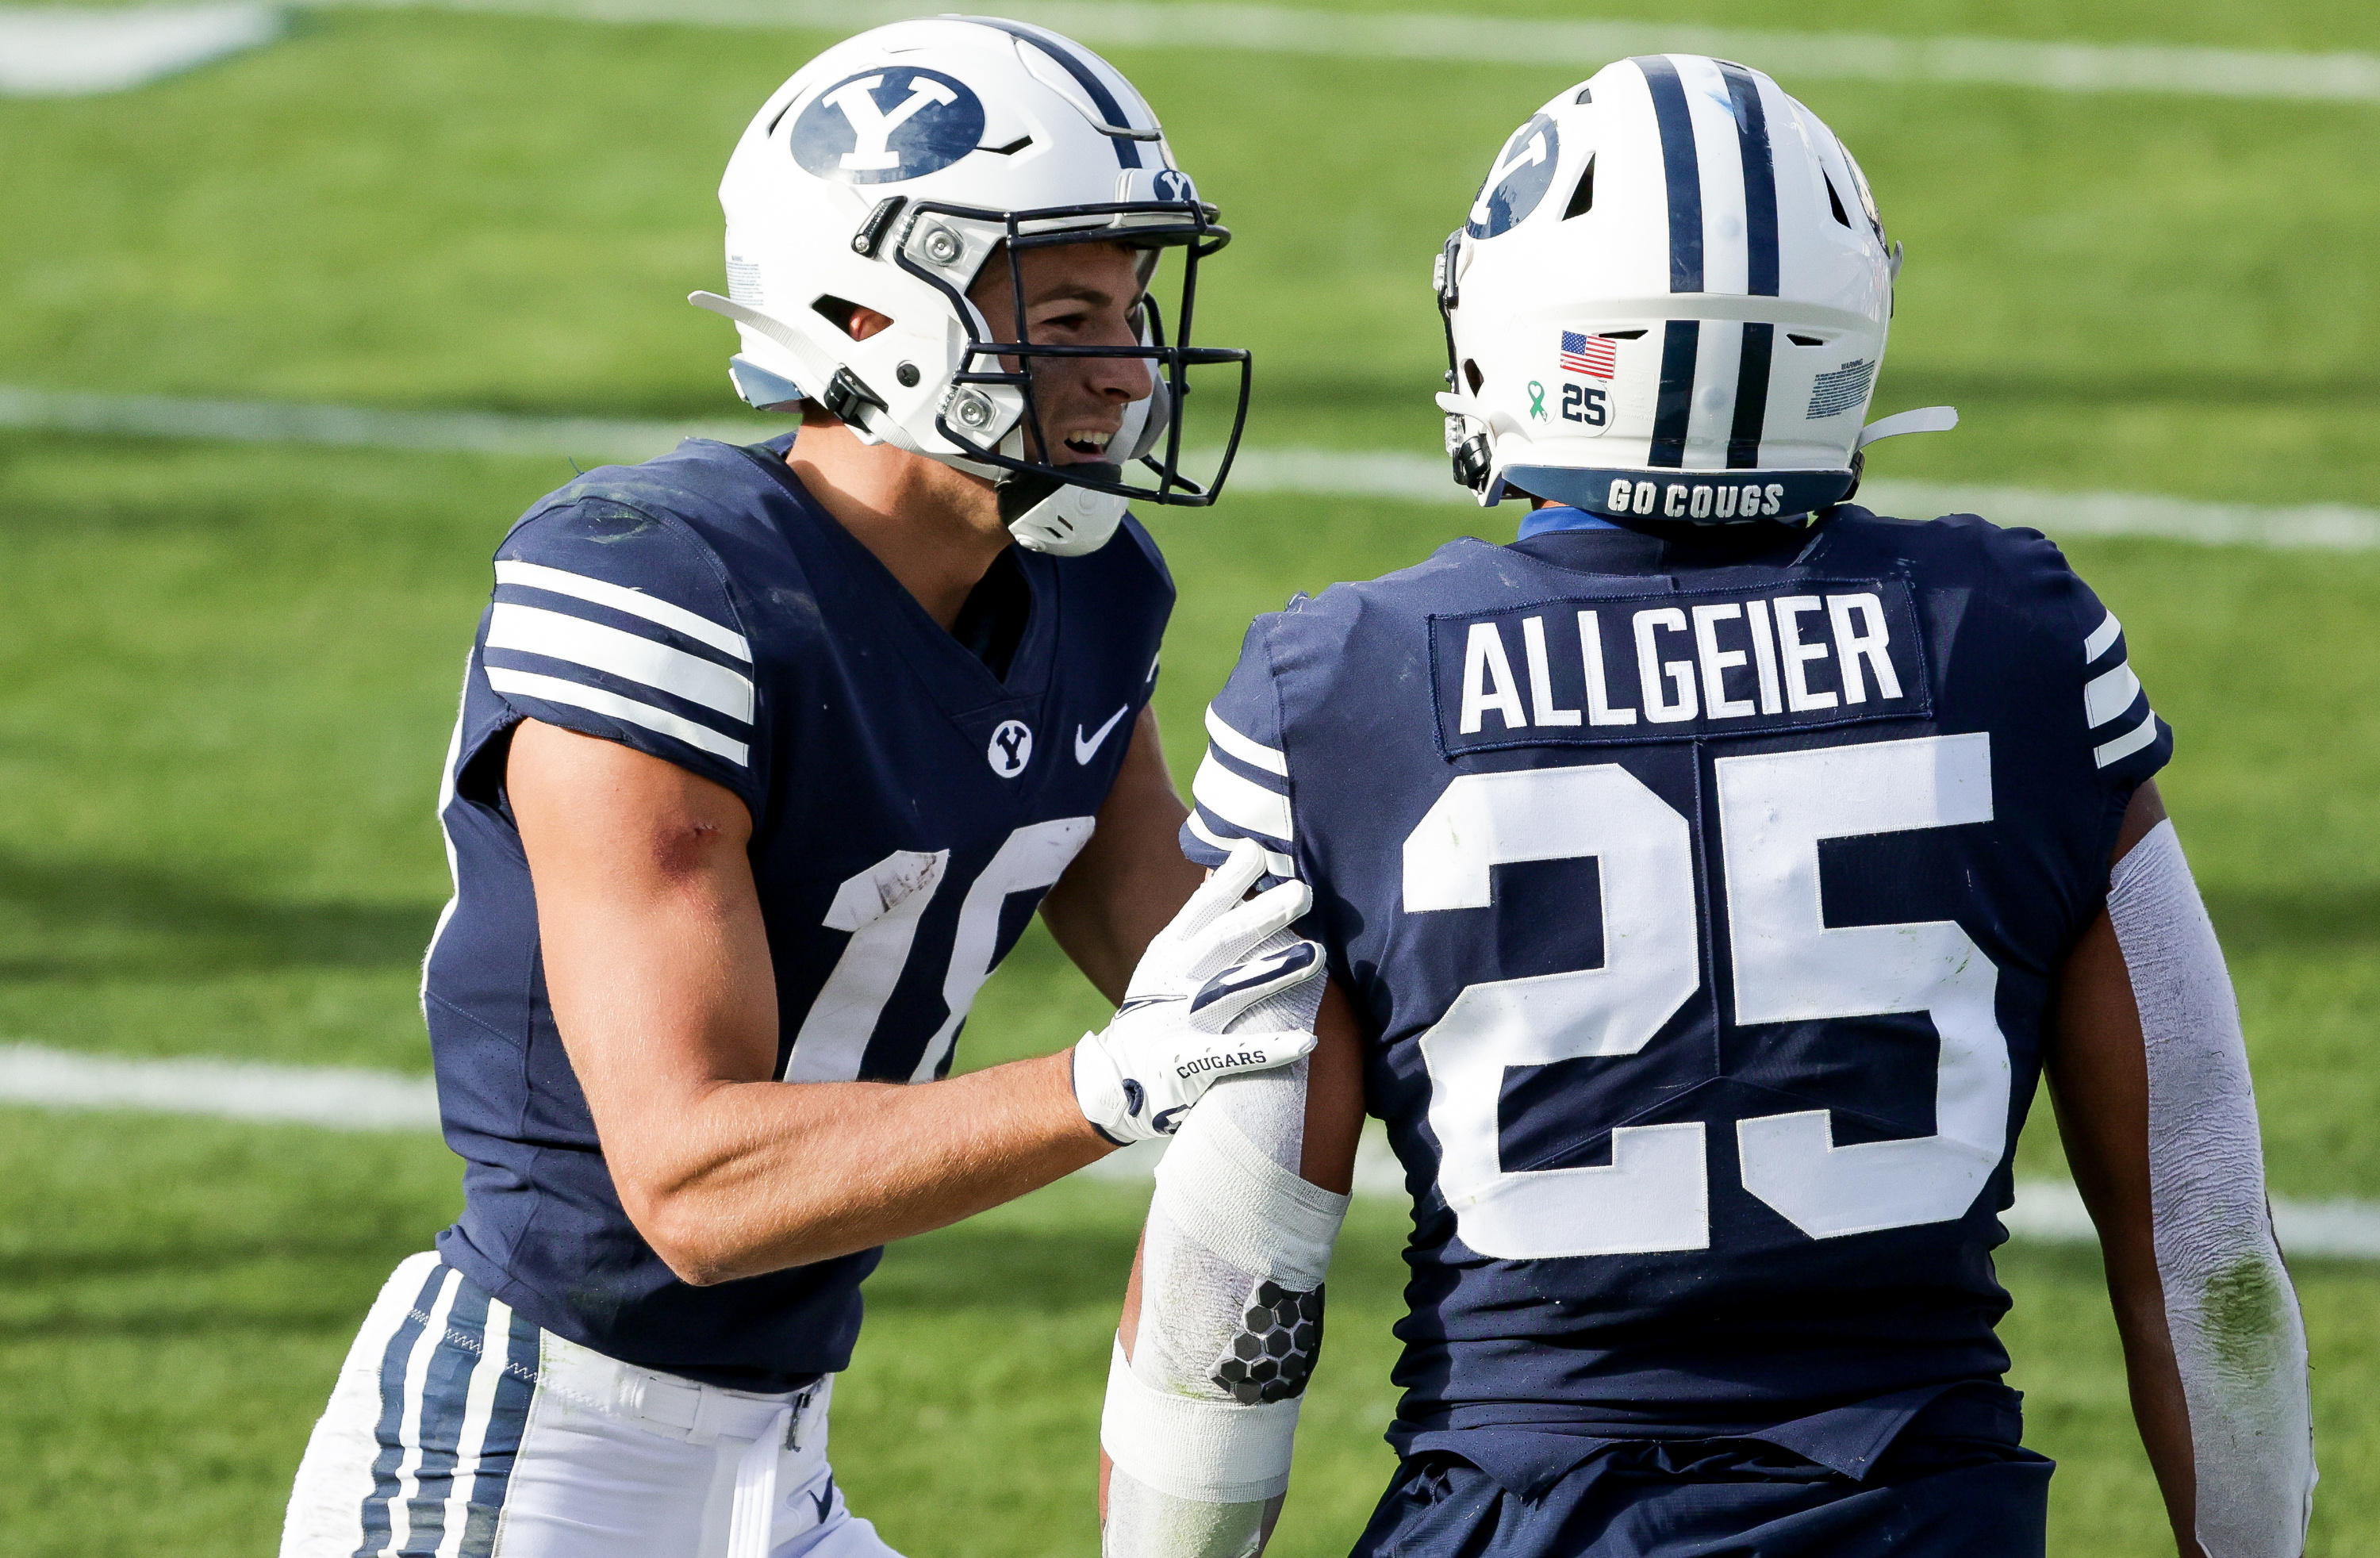 Brigham Young Cougars wide receiver Gunner Romney (18) and running back Tyler Allgeier (25) celebrate after Allgeier ran for a touchdown during the game against the UTSA Roadrunners at LaVell Edwards Stadium in Provo on Saturday, Oct. 10, 2020.